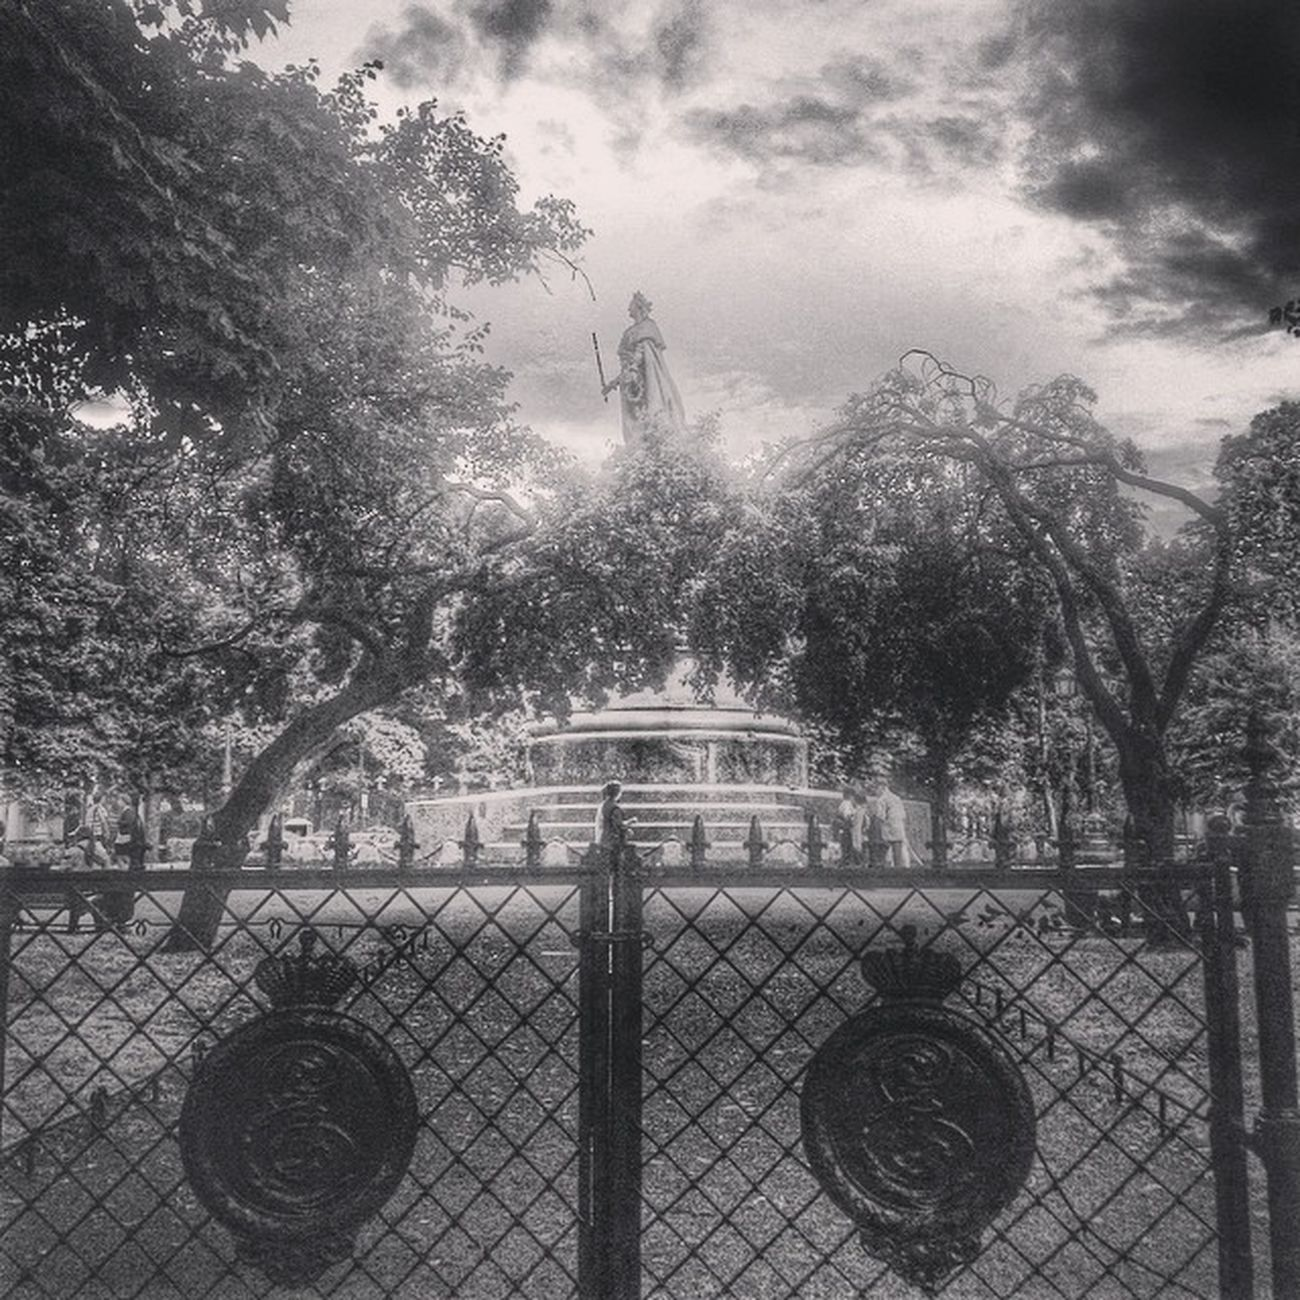 Petersburg Saintpetersburg Sanpietroburgo Saintpétersbourg architecture garden sculpture old decor old urban decorative oldcity blackandwhite bw beautiful bwn_city ic_bw insta_pic_bw bwoftheday classic urbanexploring ic_thestreets streetview streetphoto